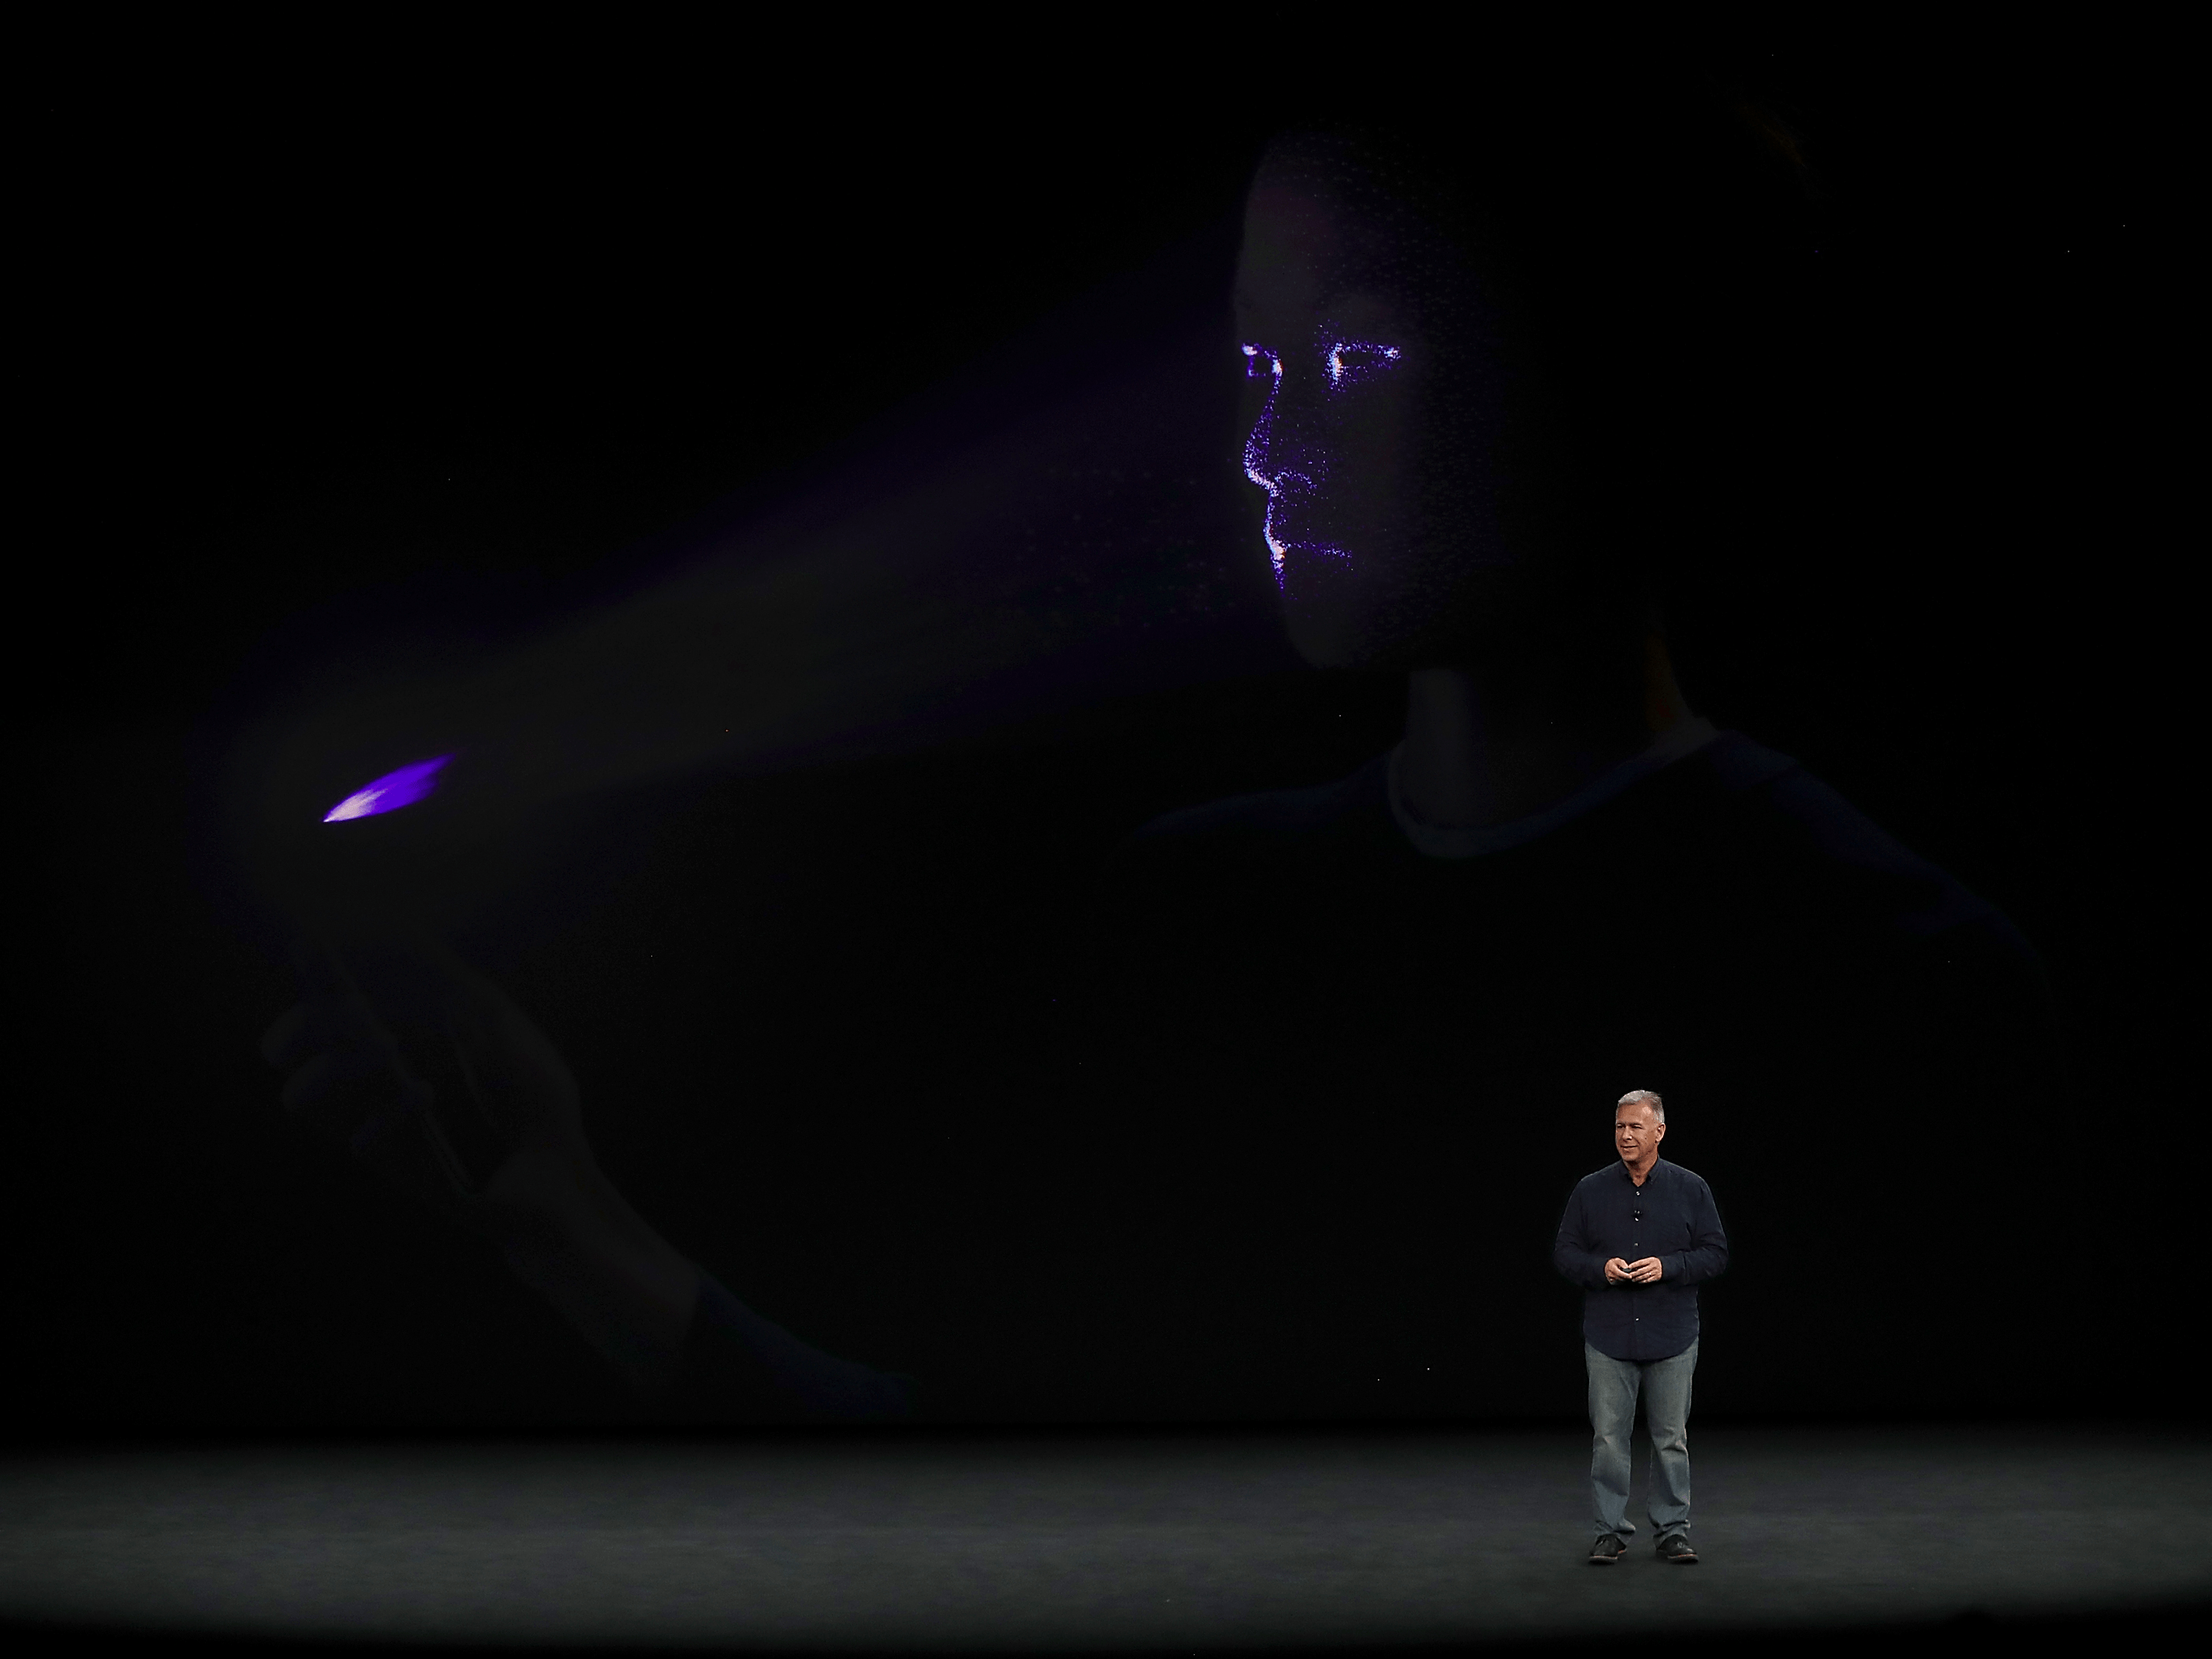 There's a new system to unlock your iPhone X called FaceID.